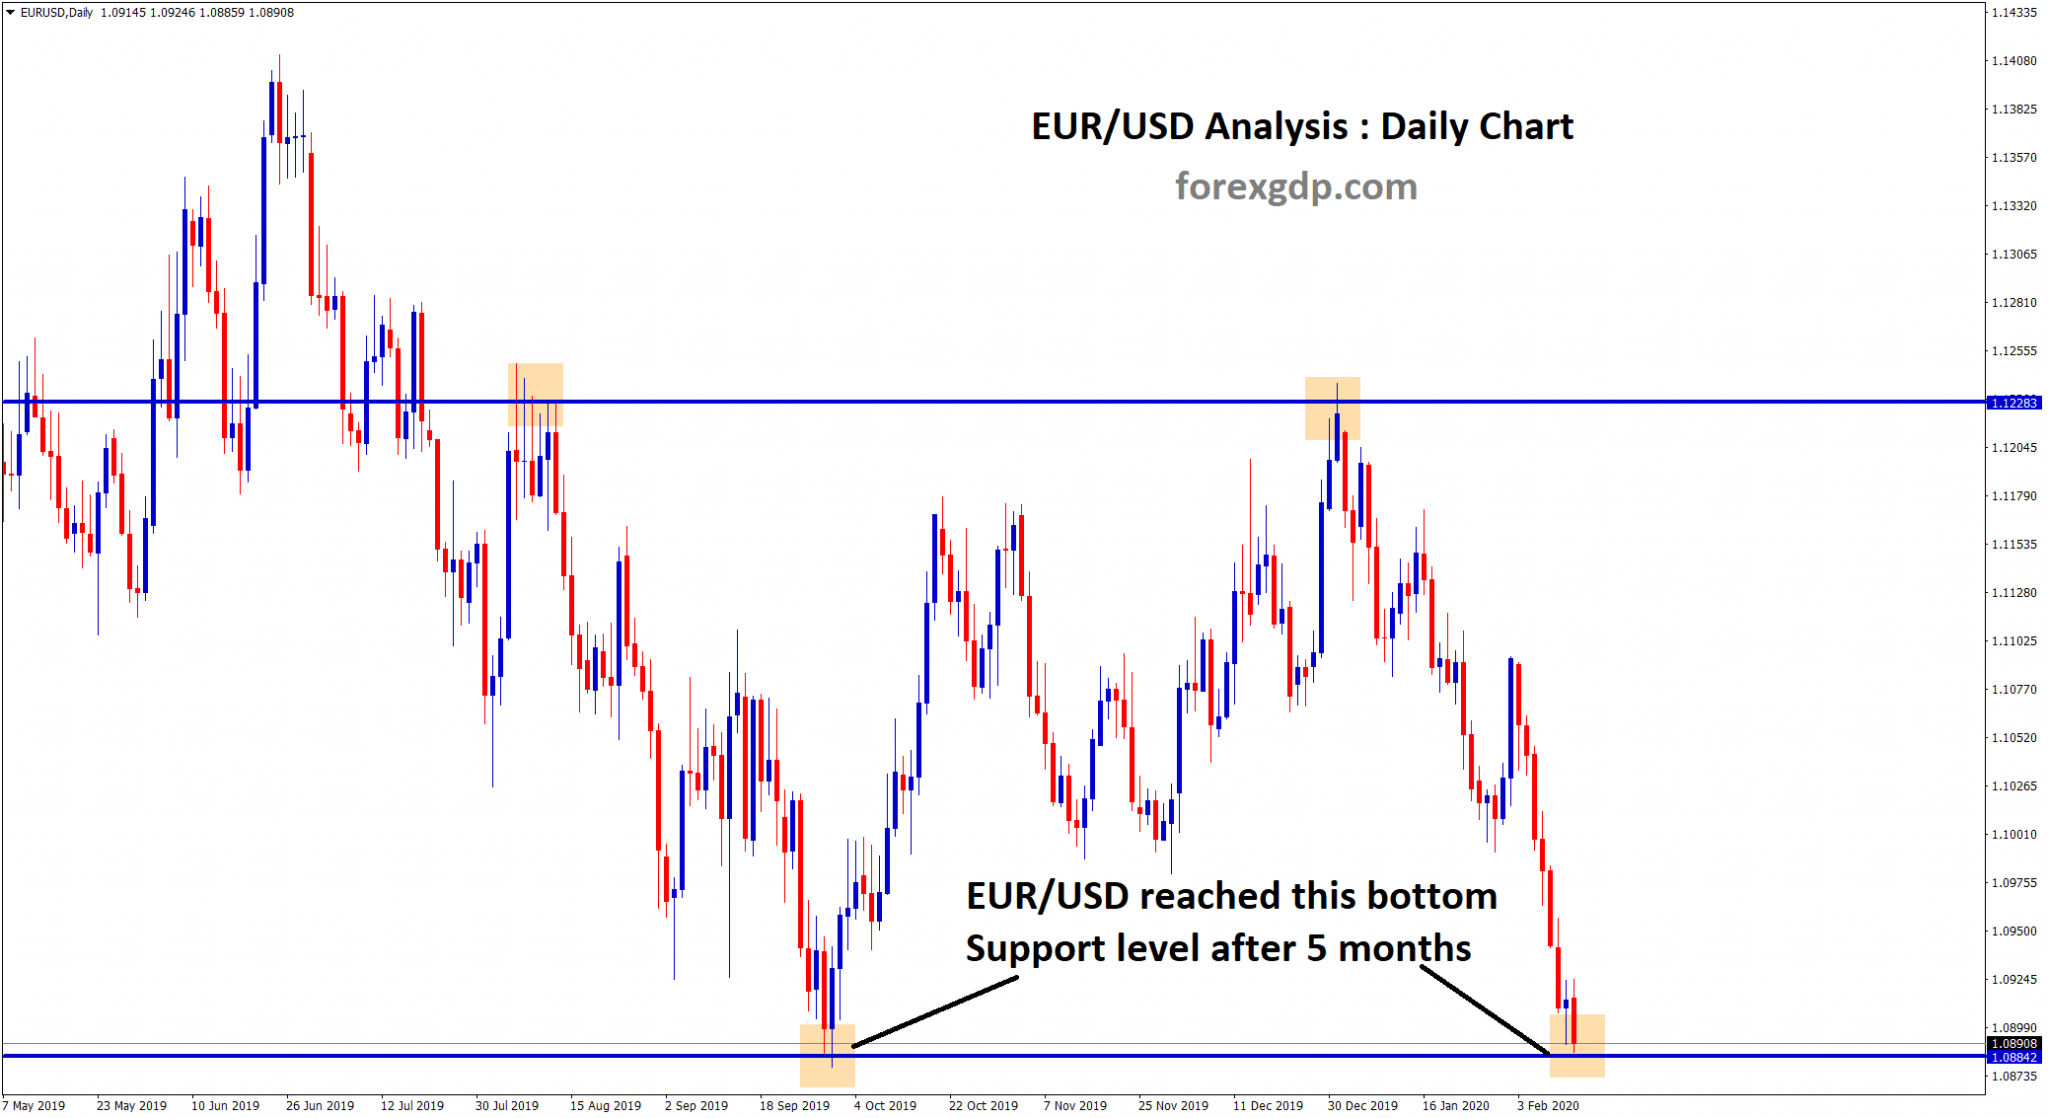 EUR USD reached the support level